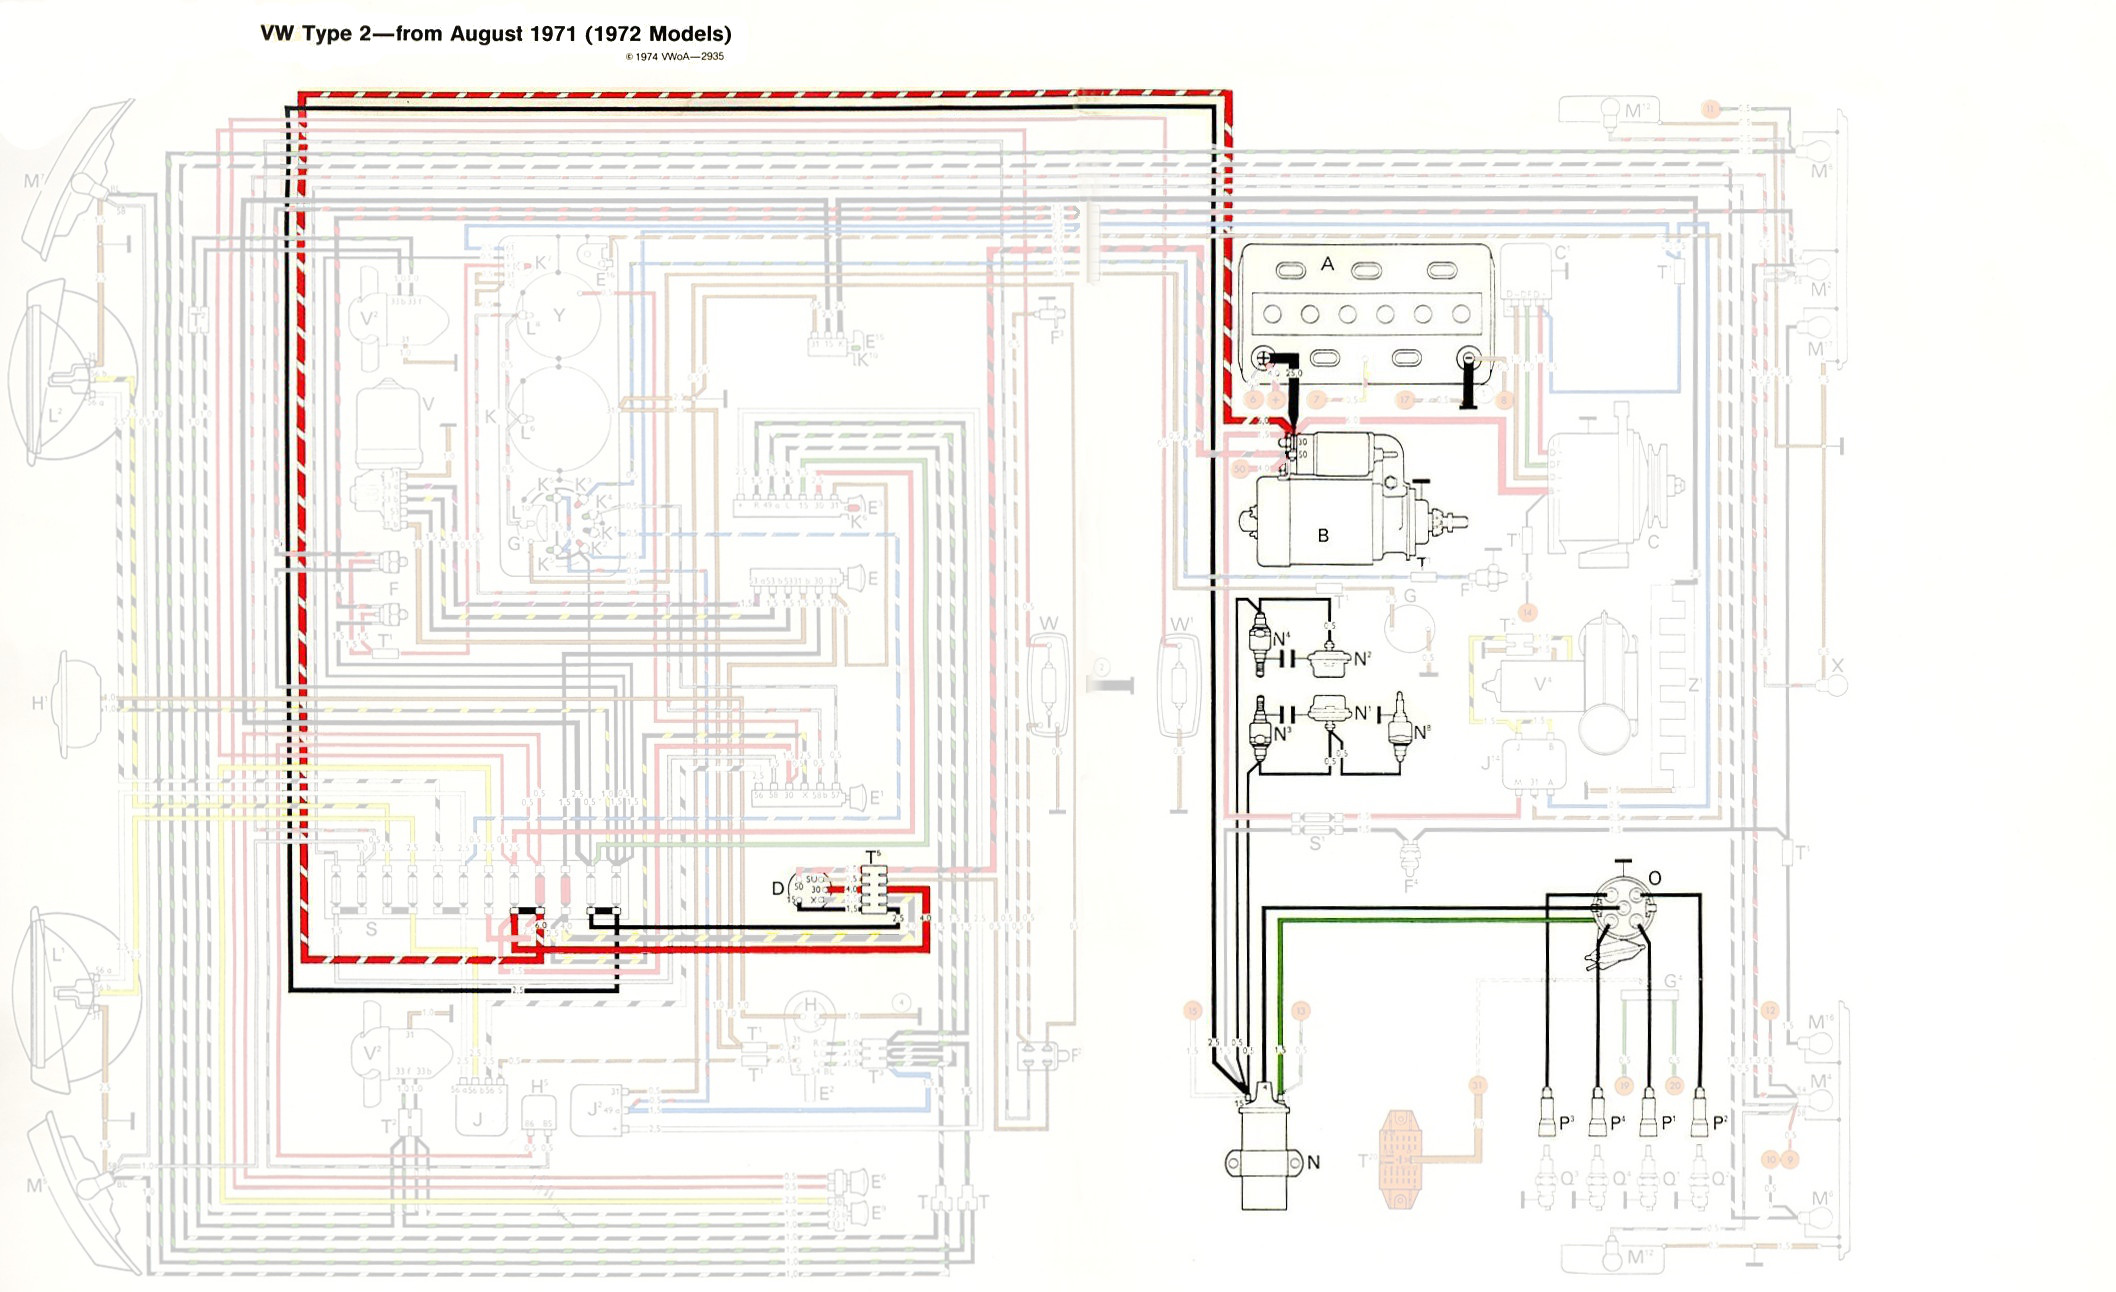 Bay Window Bus View Topic Help With Electrical 1971 Amc Gremlin Wiring Diagram Image May Have Been Reduced In Size Click To Fullscreen